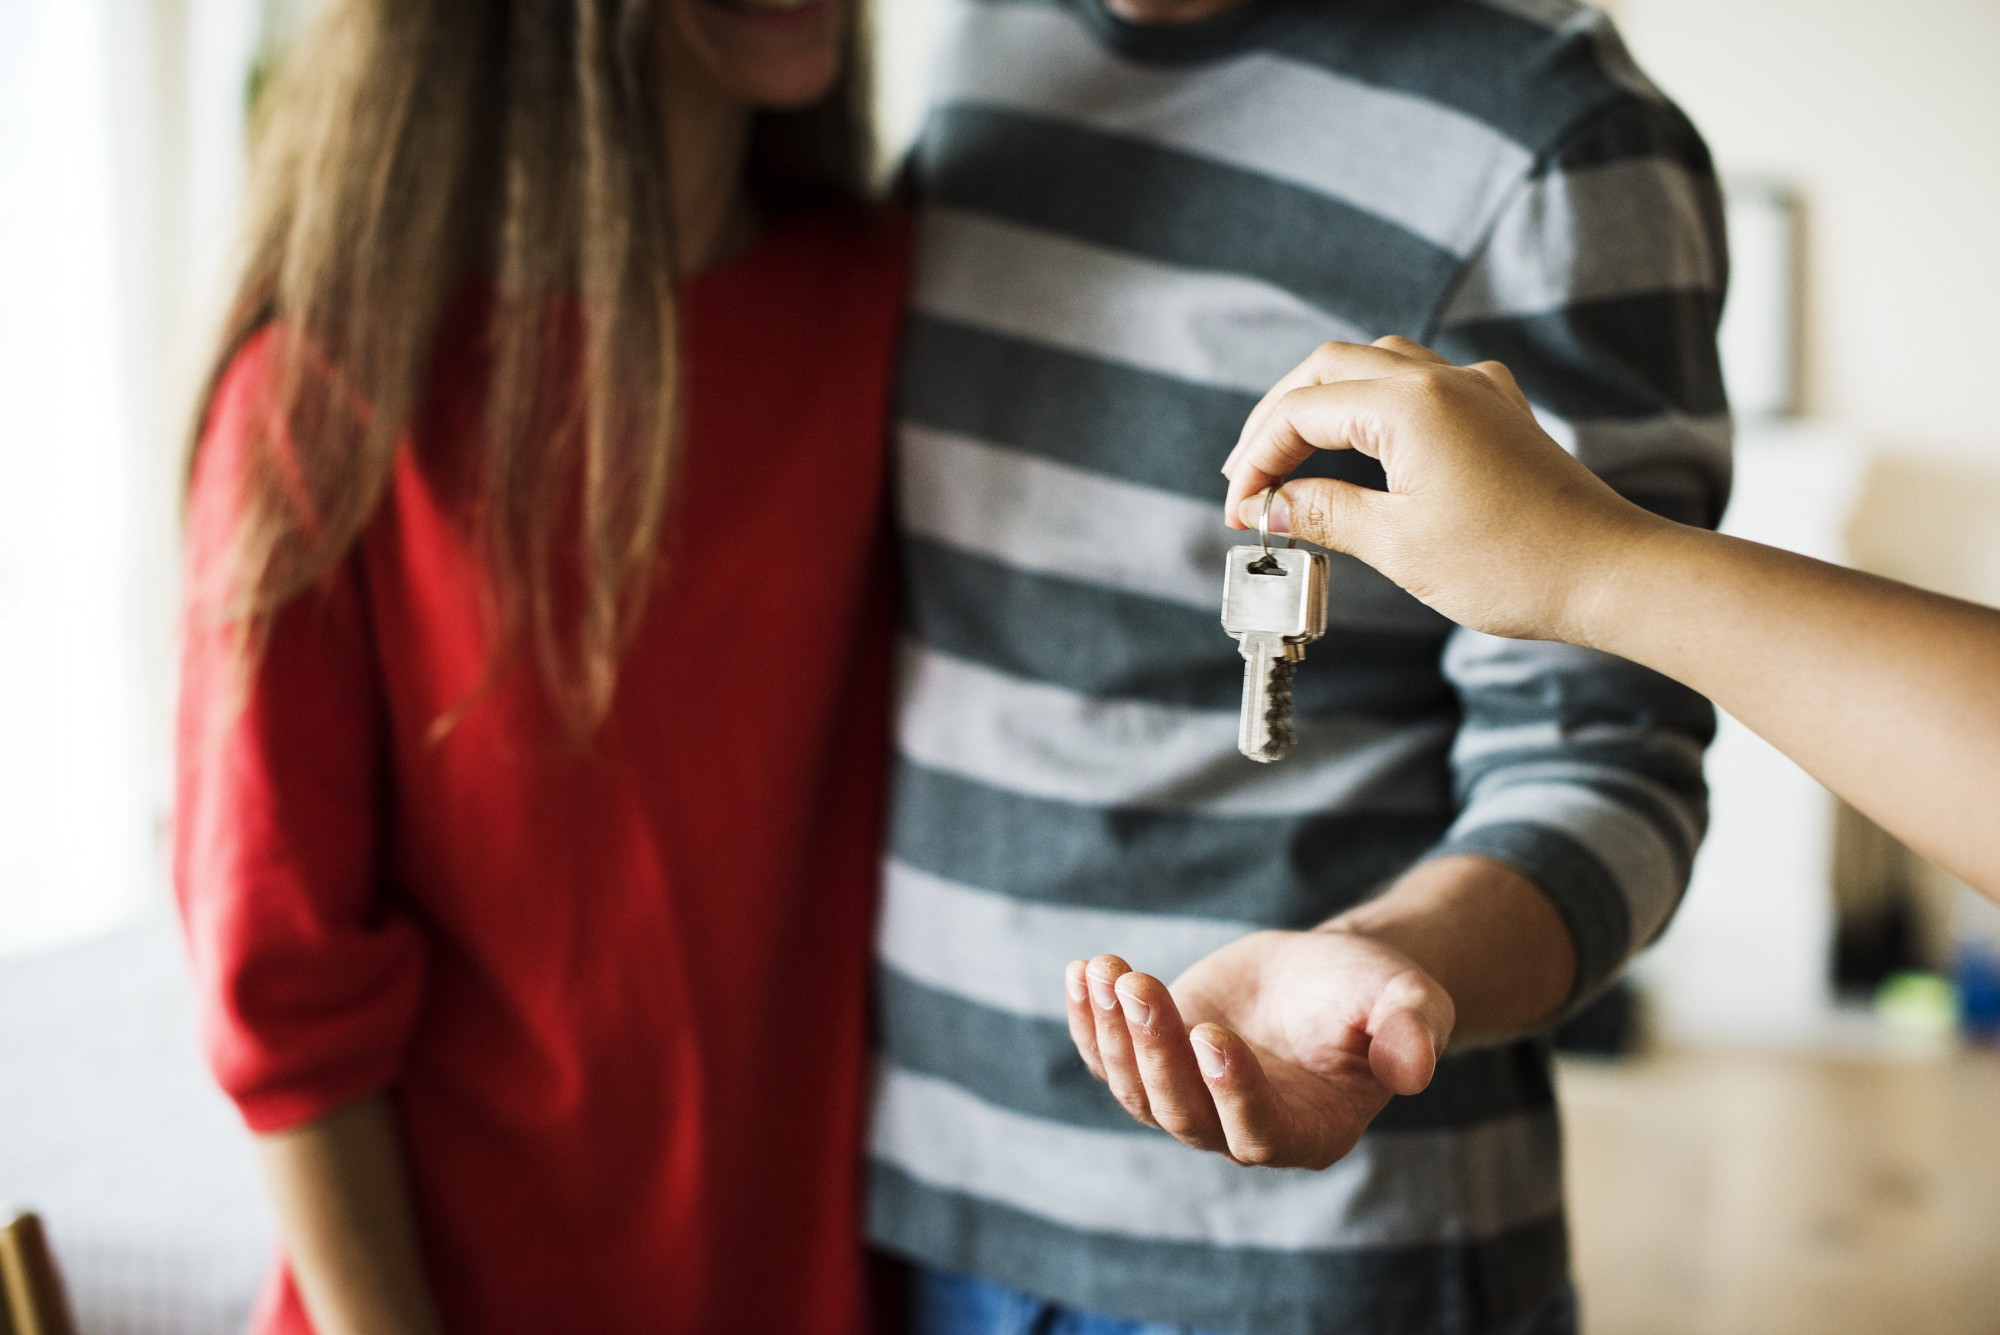 6 Things No One Tells First-Time Homebuyers